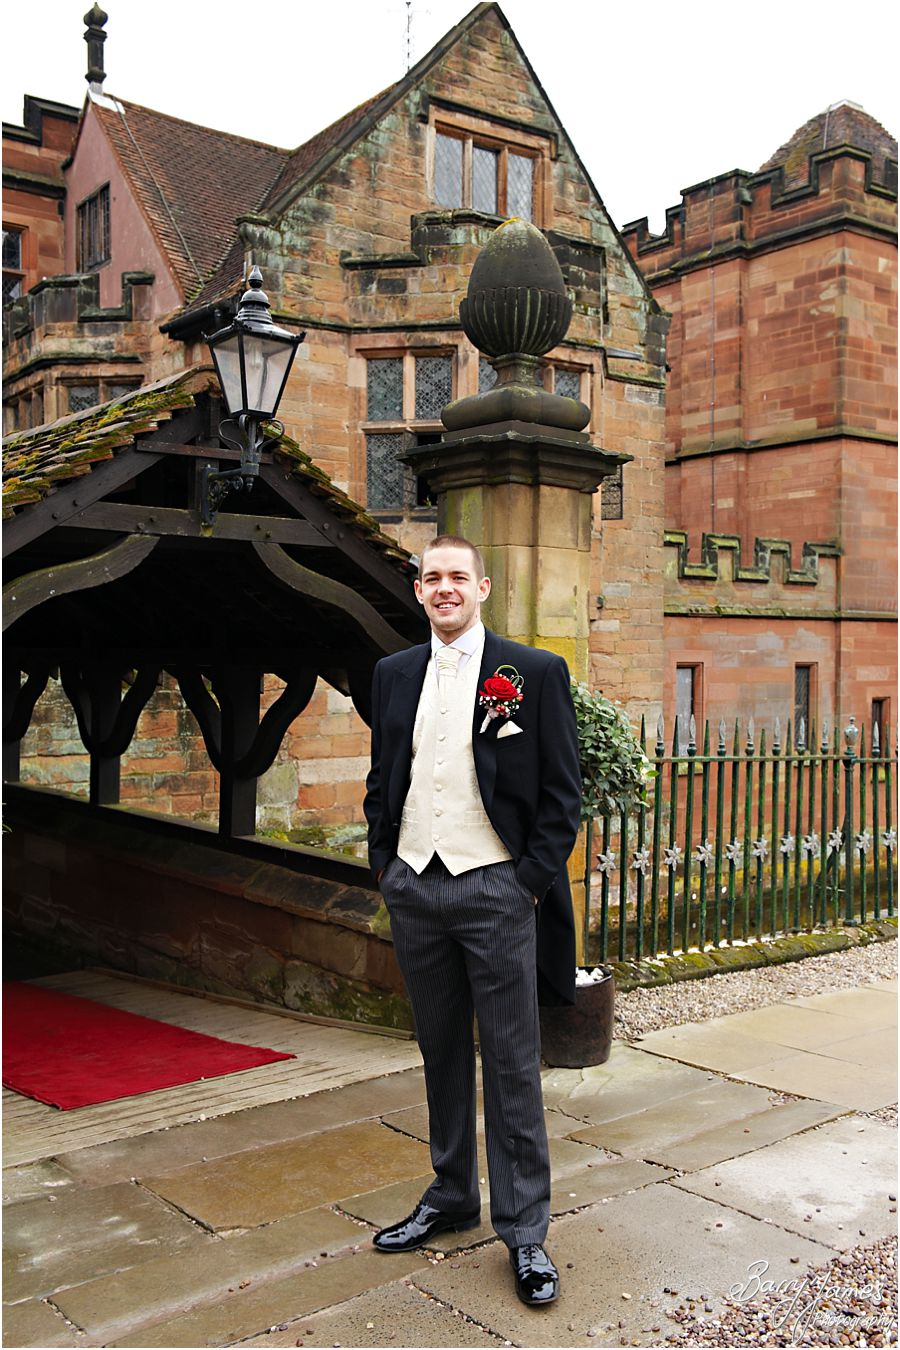 Contemporary portraits of groom ahead of ceremony at New Hall in Walmley by Little Aston Wedding Photographer Barry James